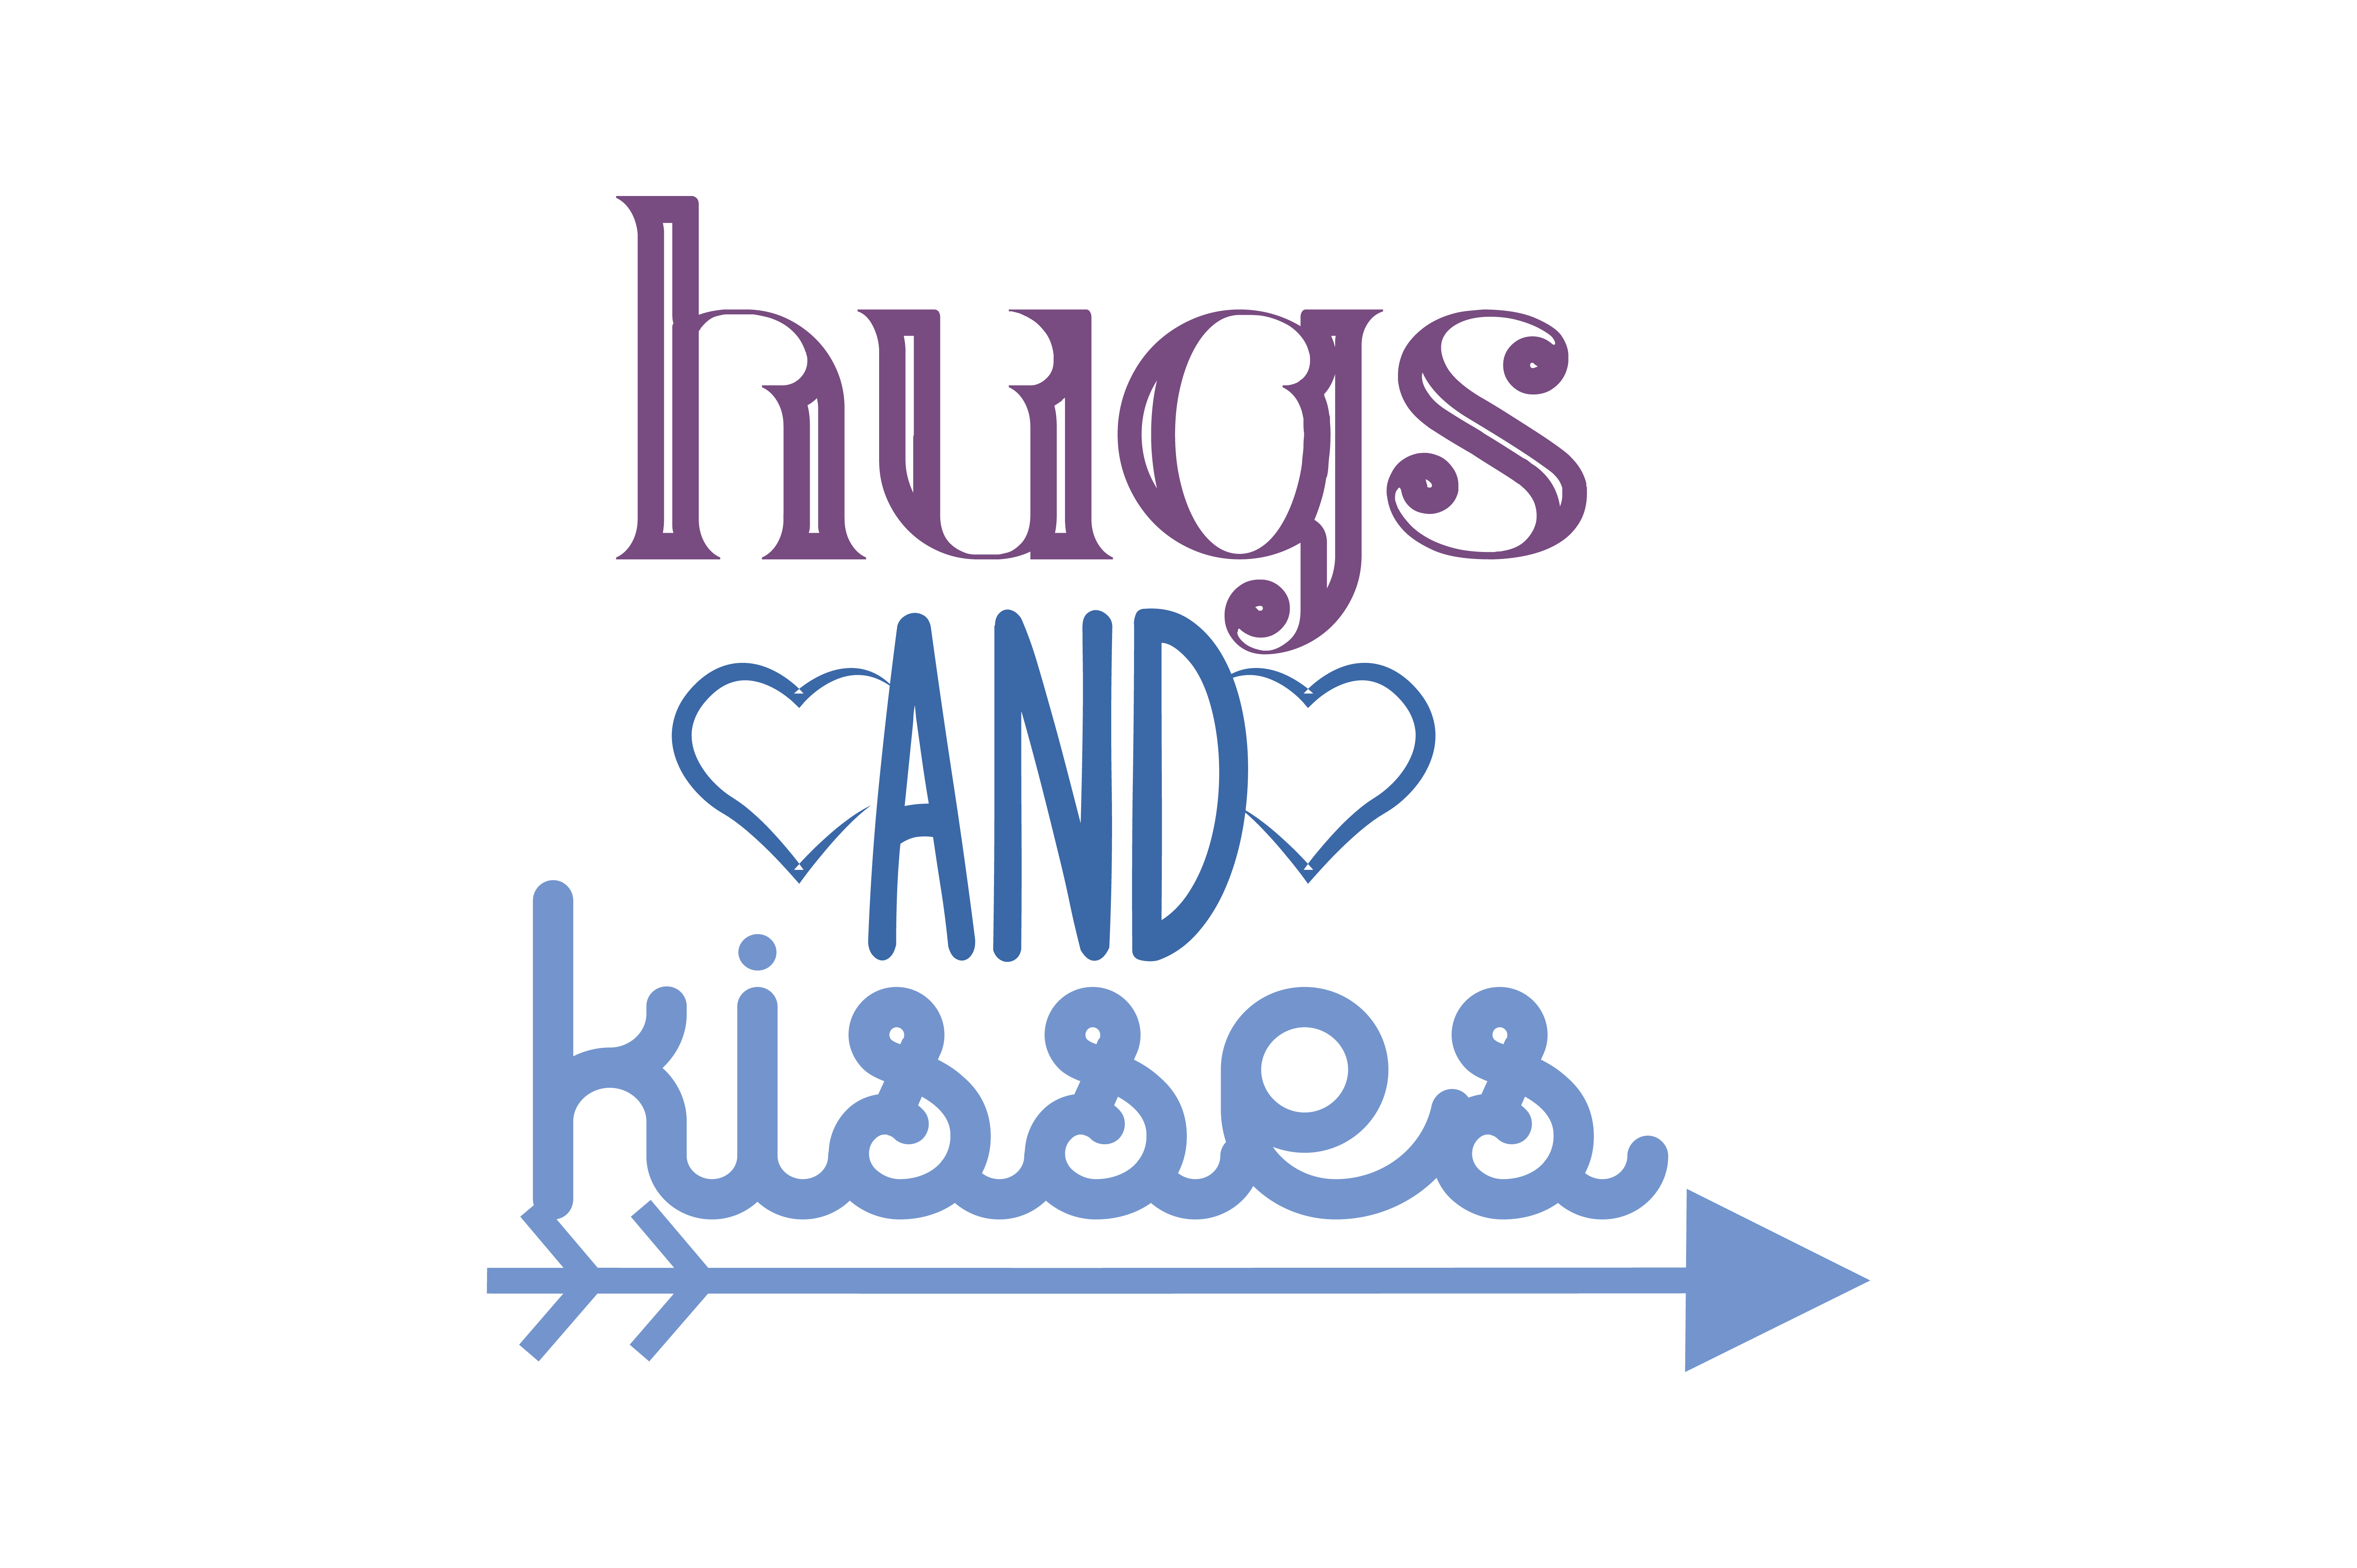 Download Free Hugs And Kisses Quote Svg Cut Grafik Von Thelucky Creative Fabrica for Cricut Explore, Silhouette and other cutting machines.